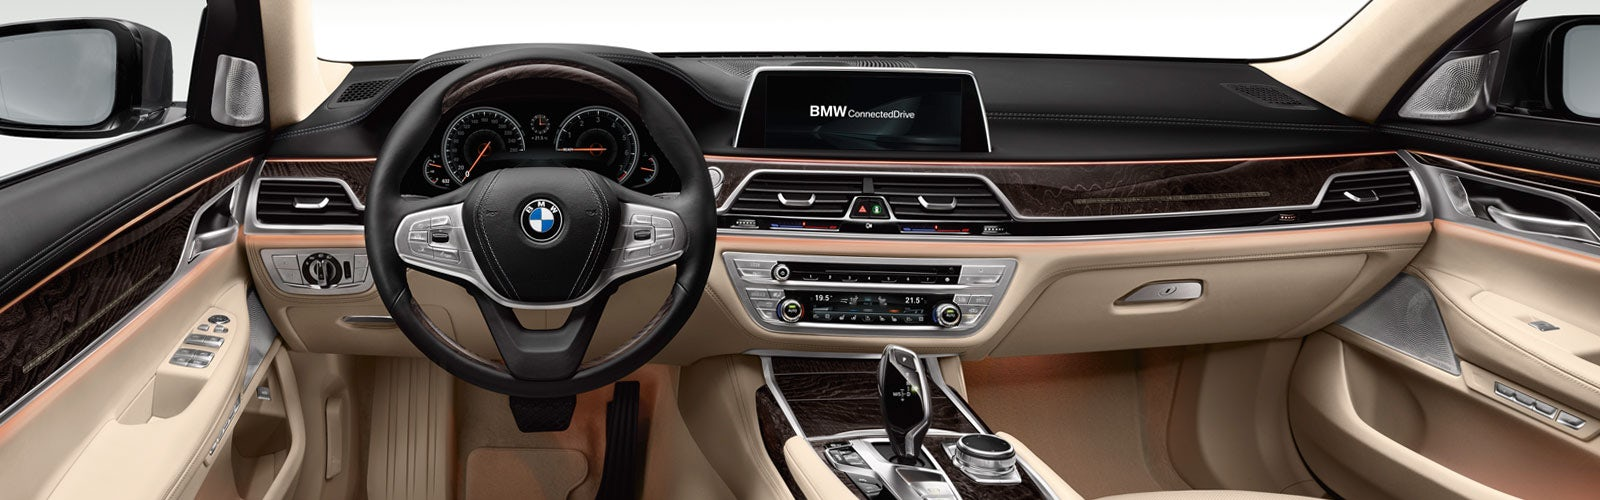 New bmw 8 series price specs release date carwow - Bmw X7 Styling